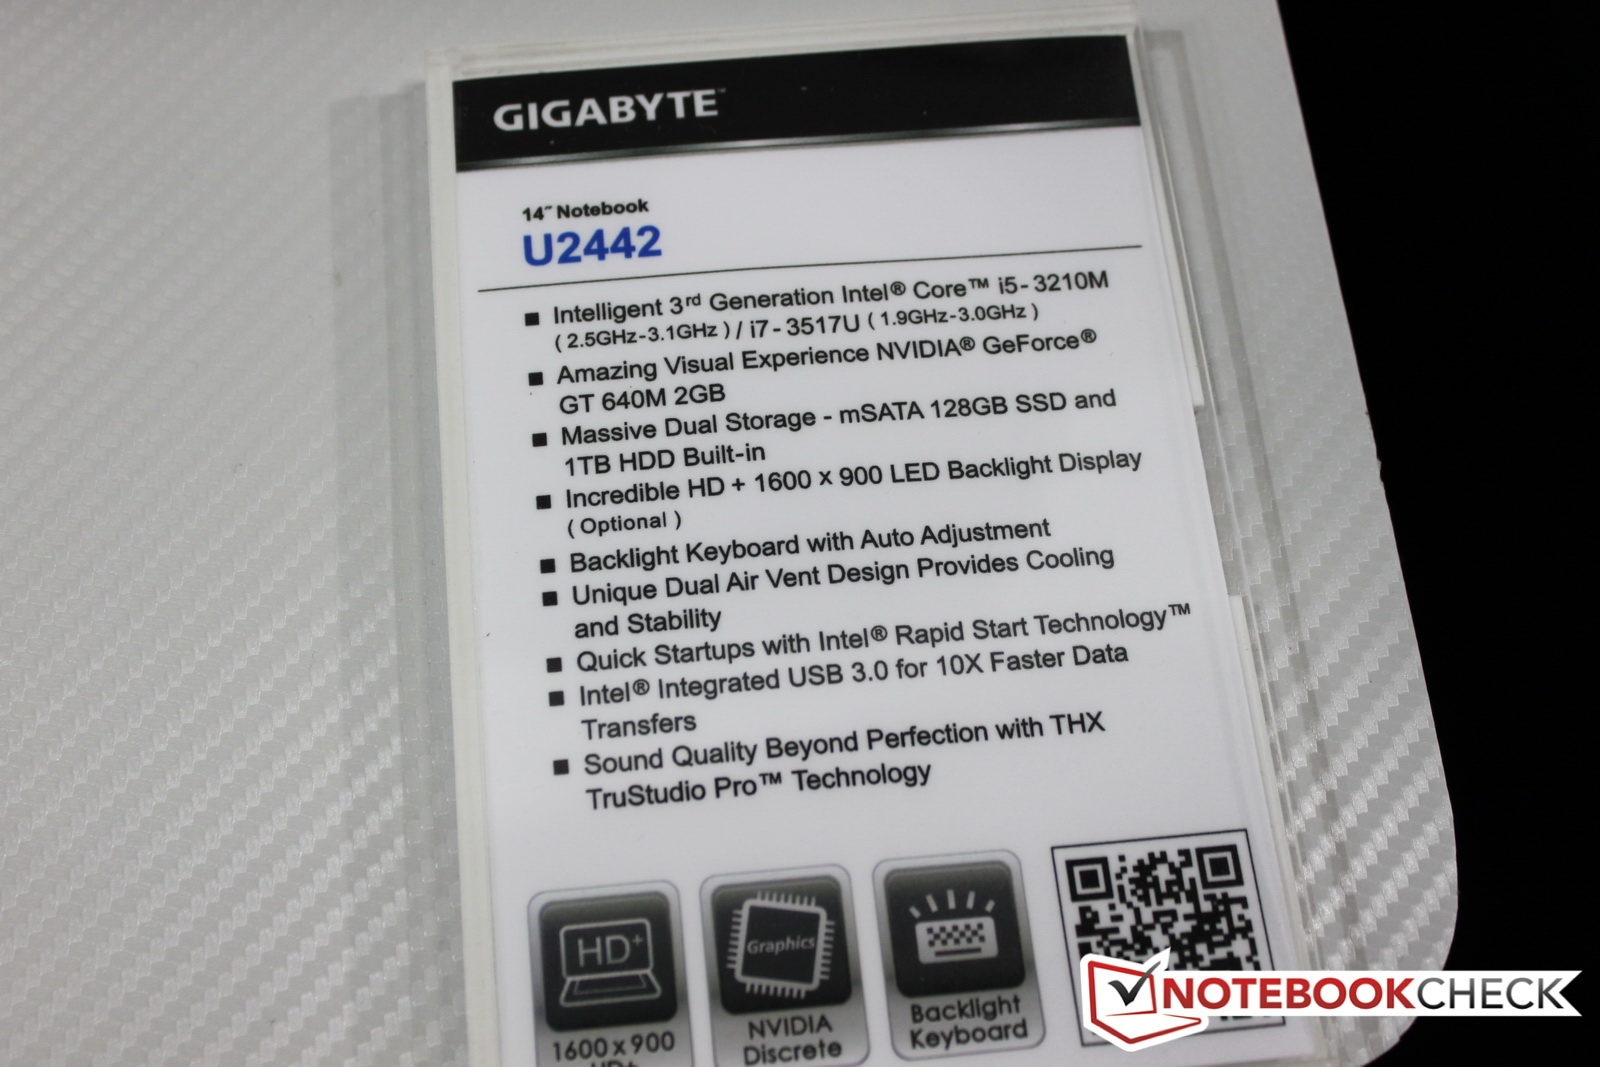 Gigabyte M2432 Notebook THX EQ X64 Driver Download